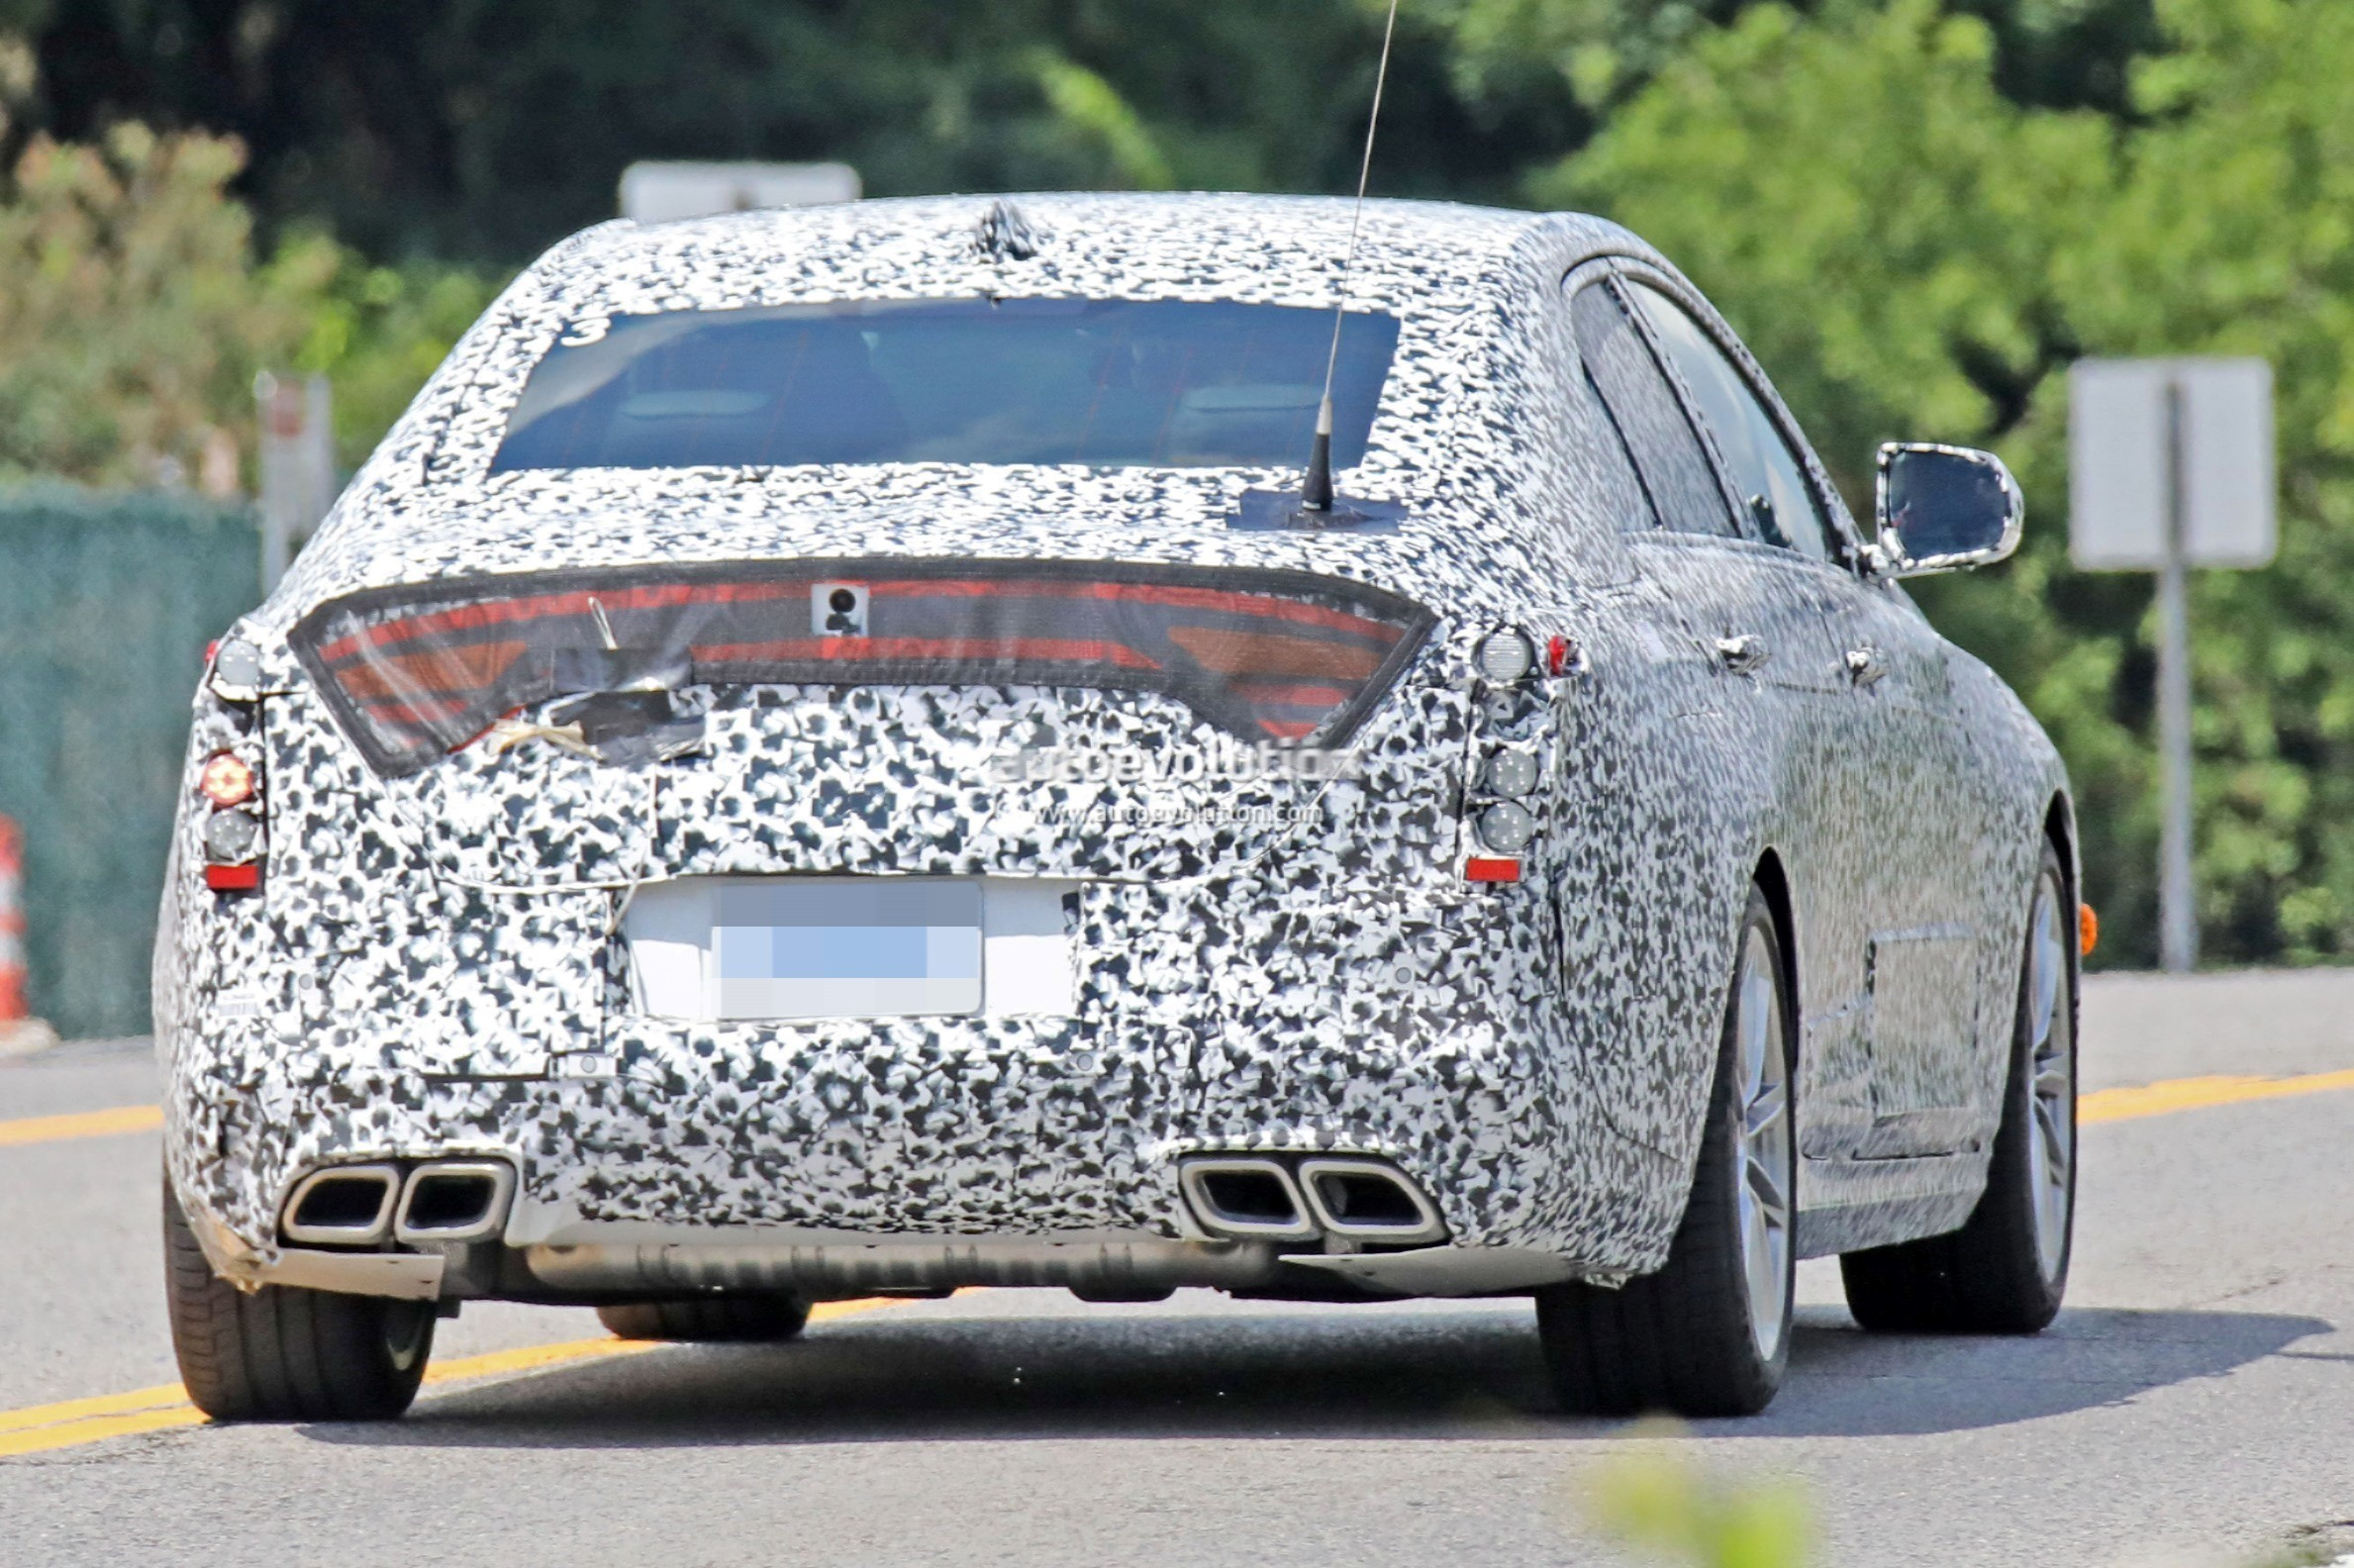 2020 Cadillac Ct4 Small Rwd Sedan Spied Flaunting Quad